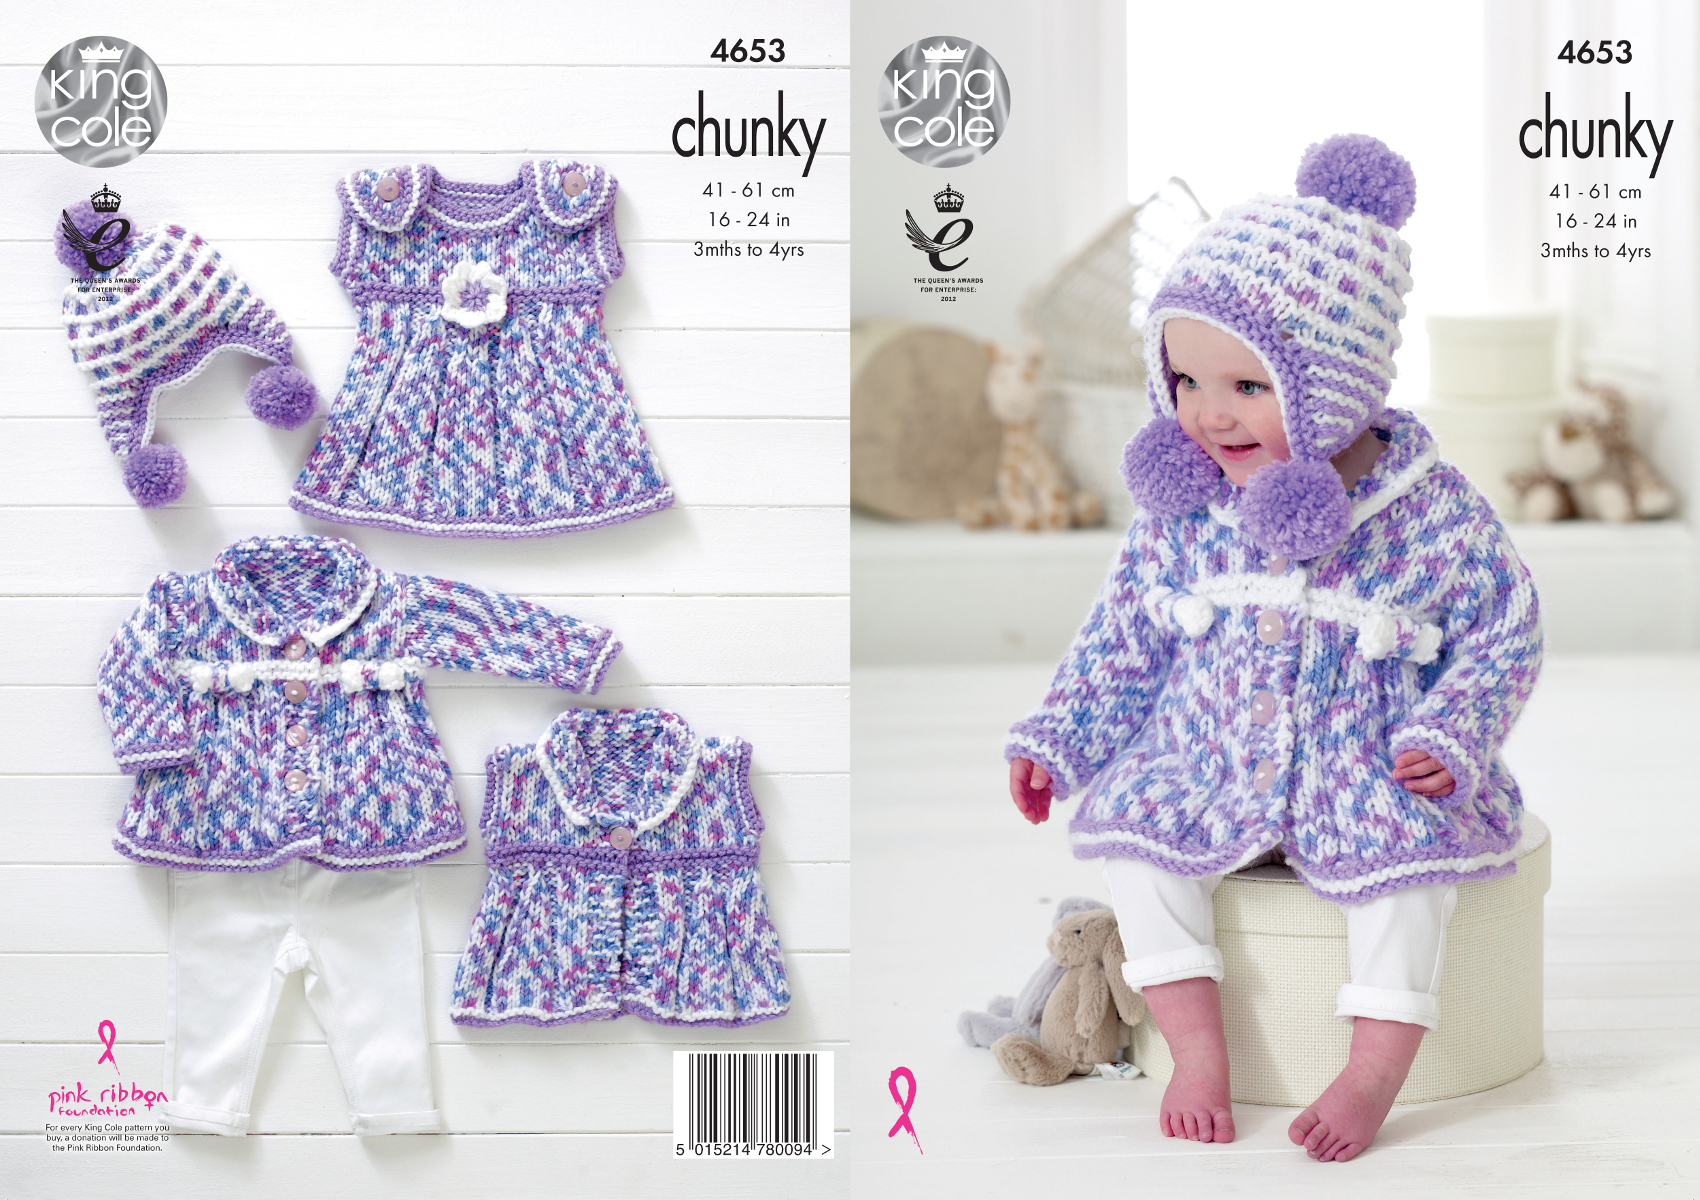 Chunky knit knitting pattern king cole baby coat dress waistcoat chunky knit knitting pattern king cole baby coat dress waistcoat hat set 4653 bankloansurffo Gallery